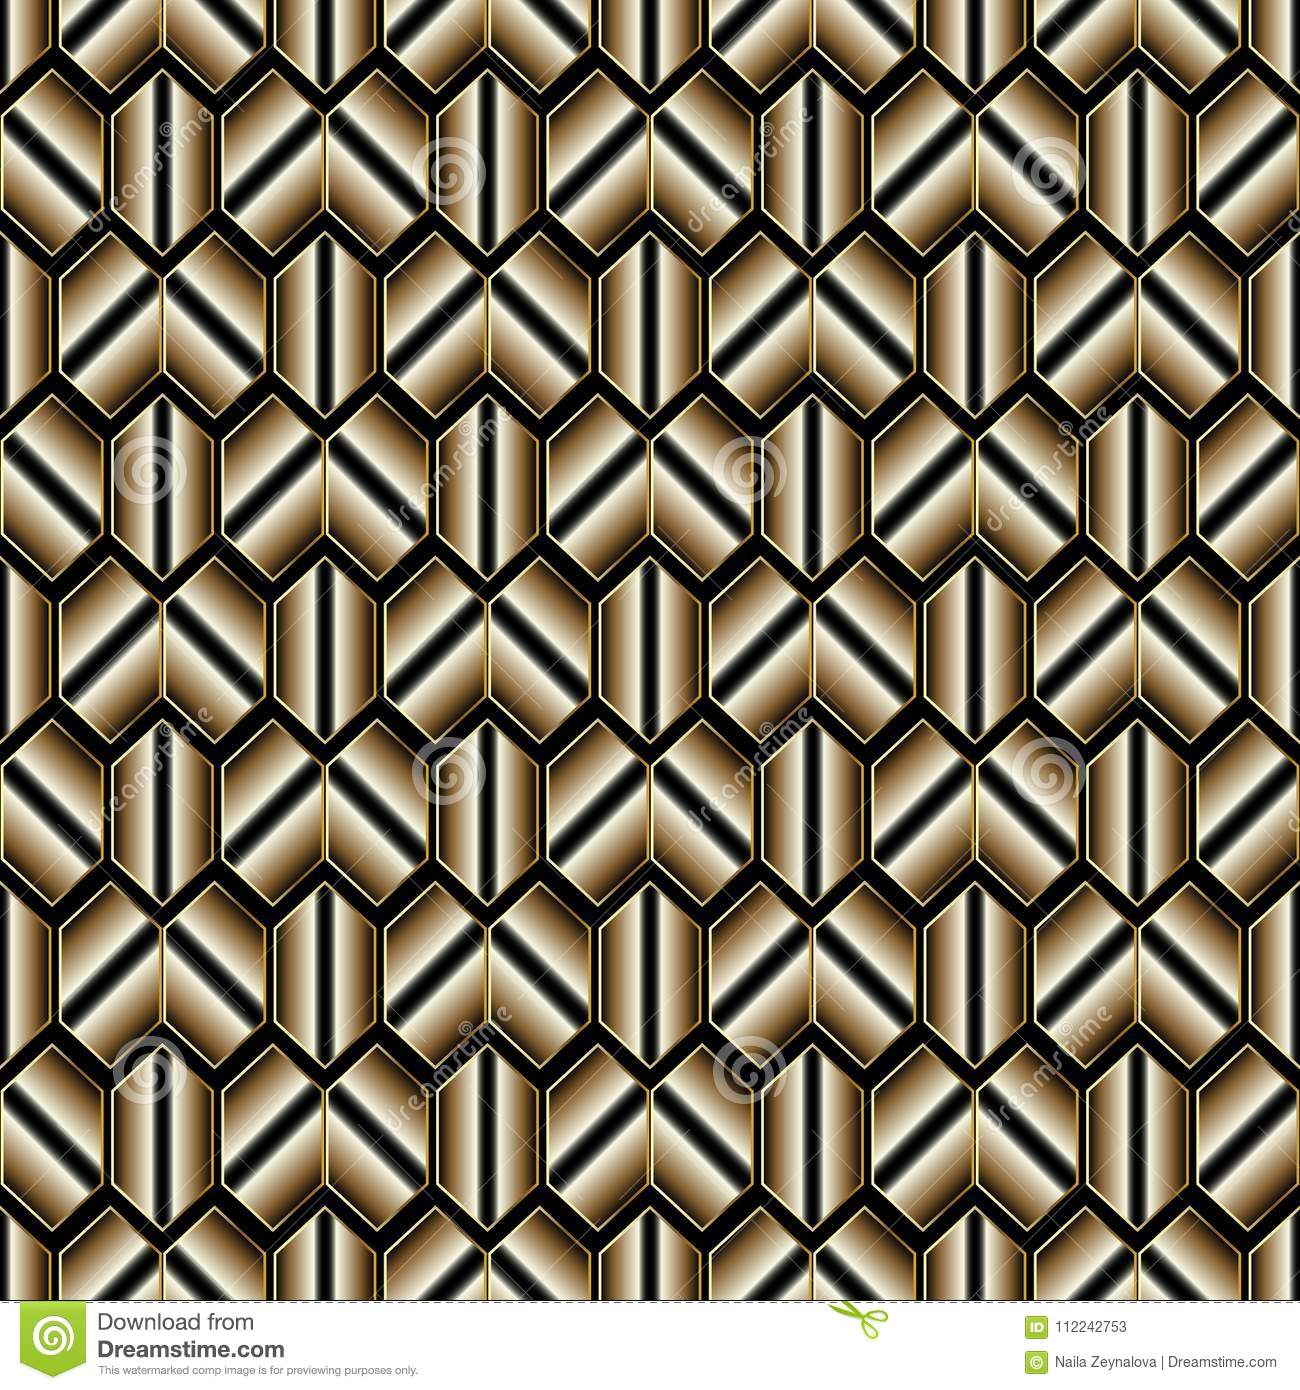 Modern Vector Black And Gold Honeycomb Background Luxury 3d Wallpaper Surface Ornamental Texture Stylish Design For Fabric Textile Wrapping Prints